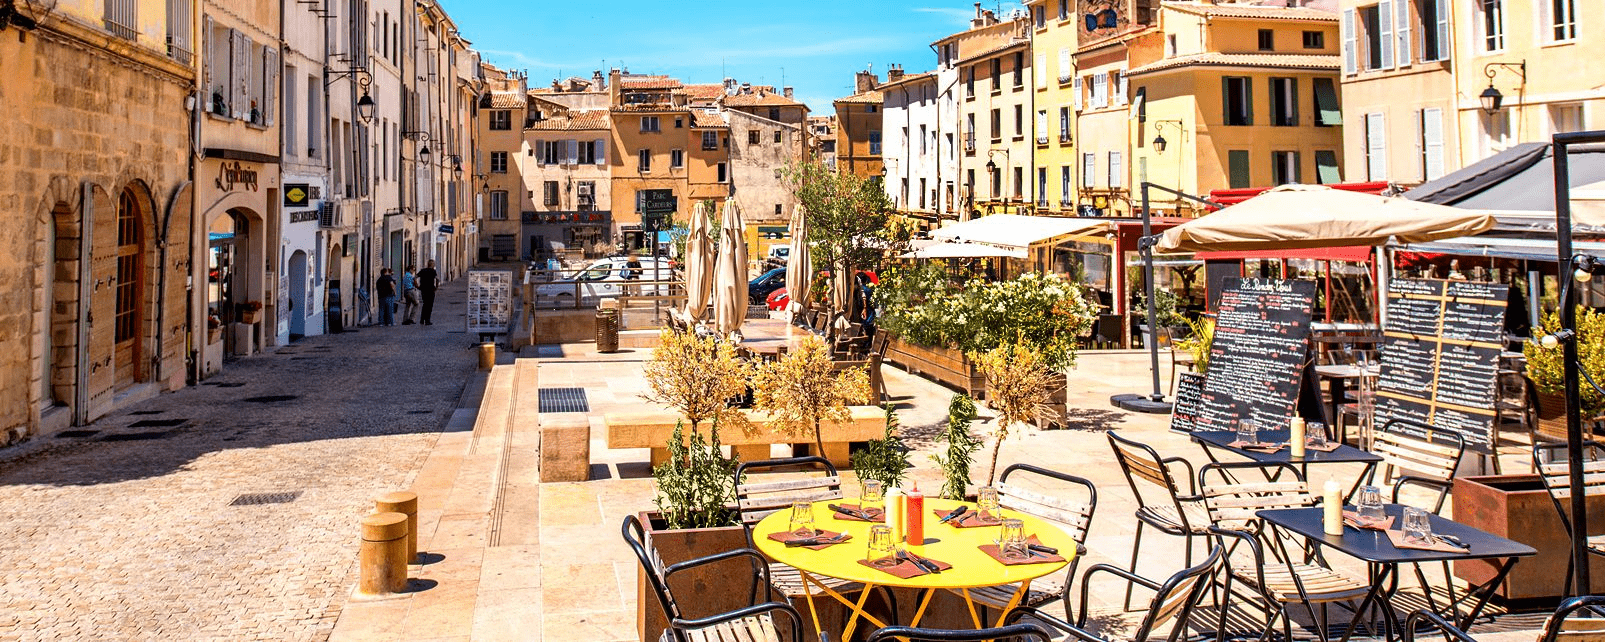 View of street with cafe and outdoor seating in Aix-en-Provence, France